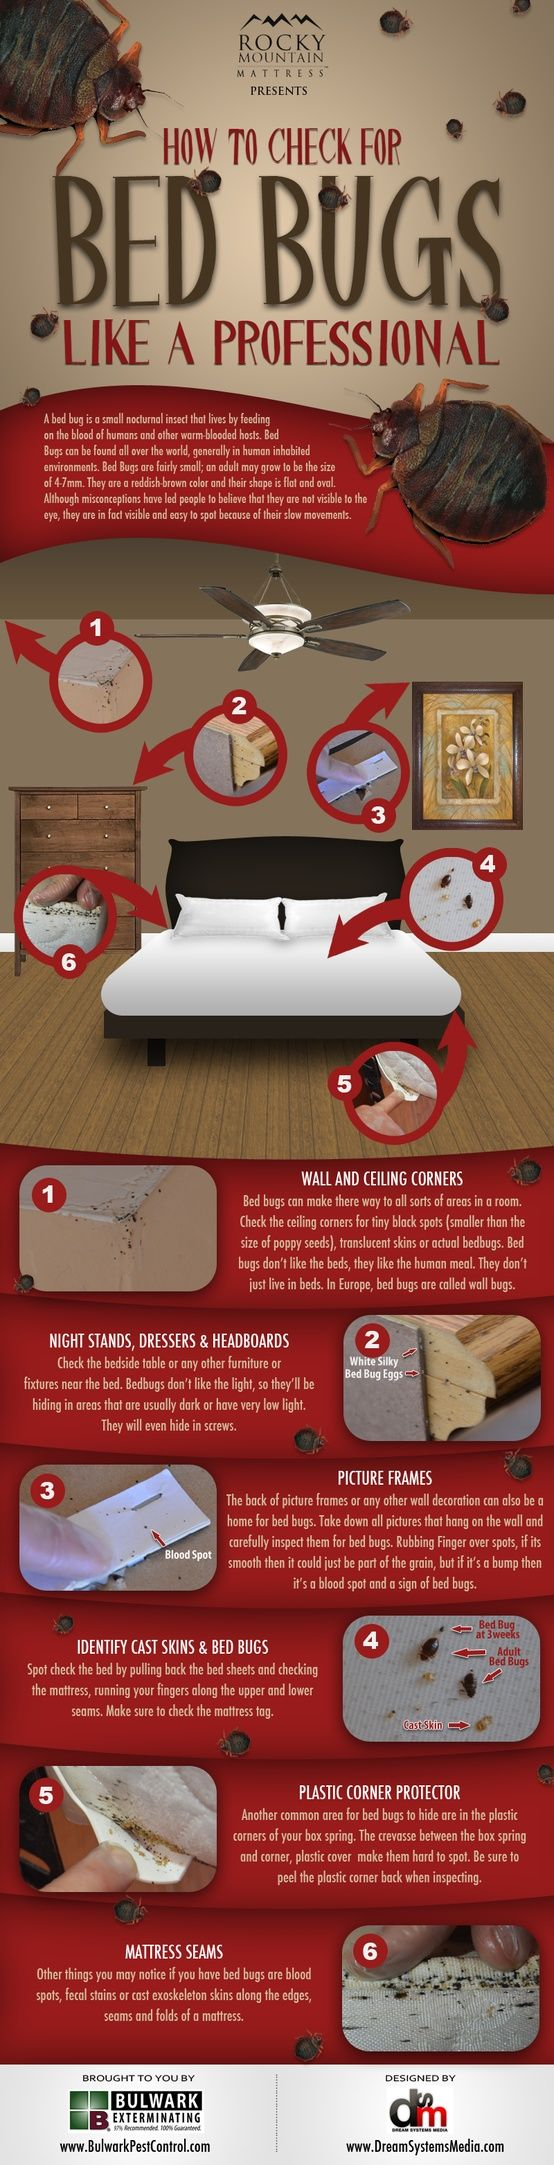 Bugged Out by Bed Bugs? How to Inspect your home for bed bugs like a Pro.